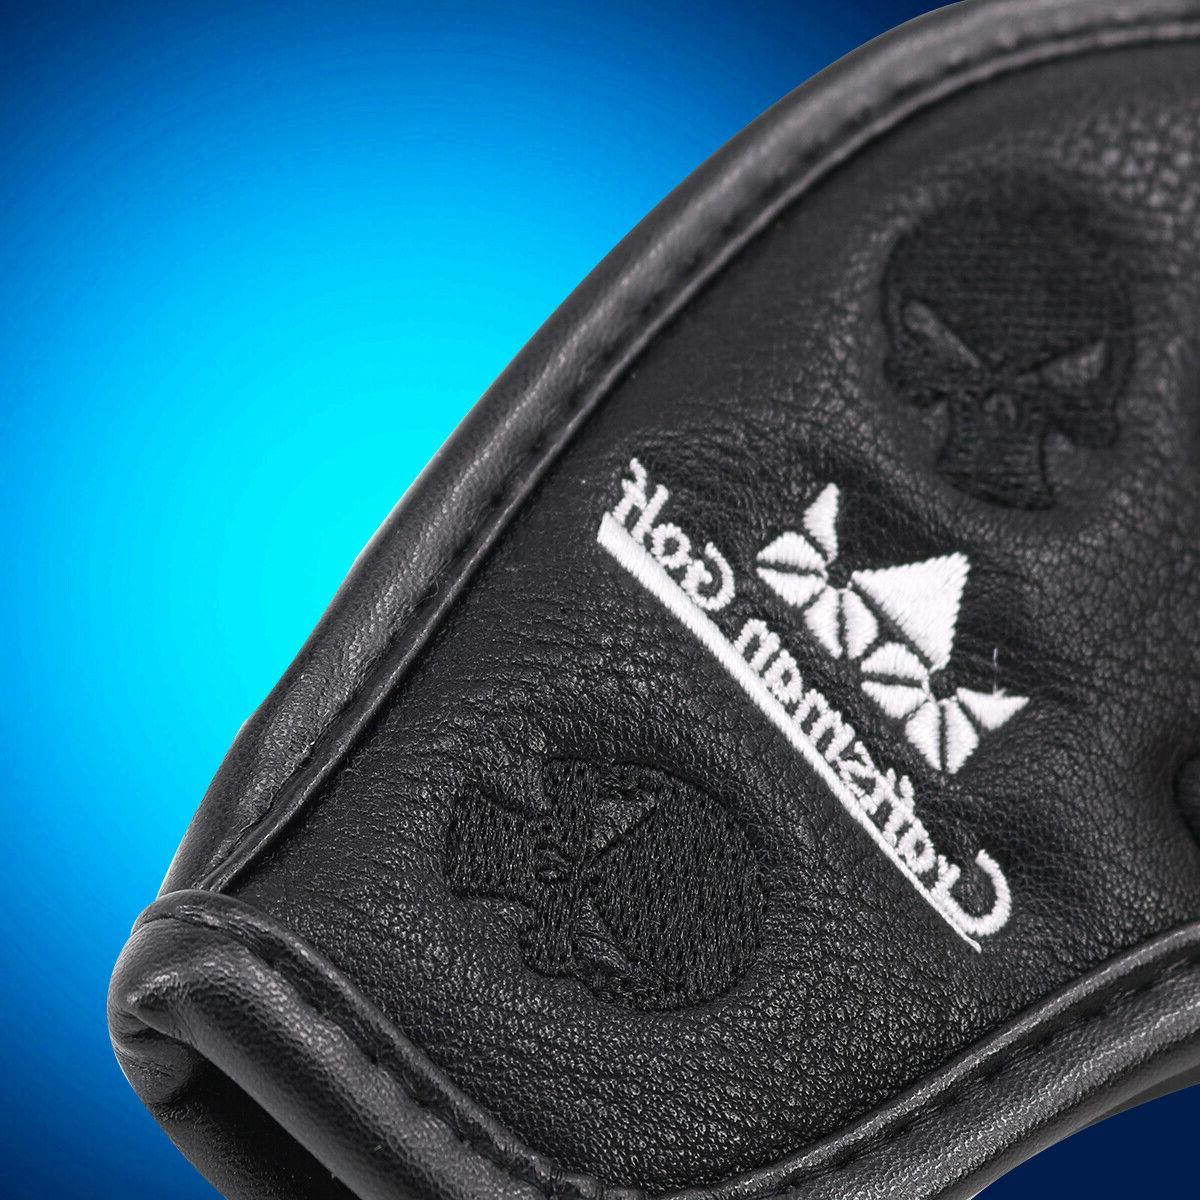 Leather Covers Iron Head Covers for Golf Clubs Taylormade